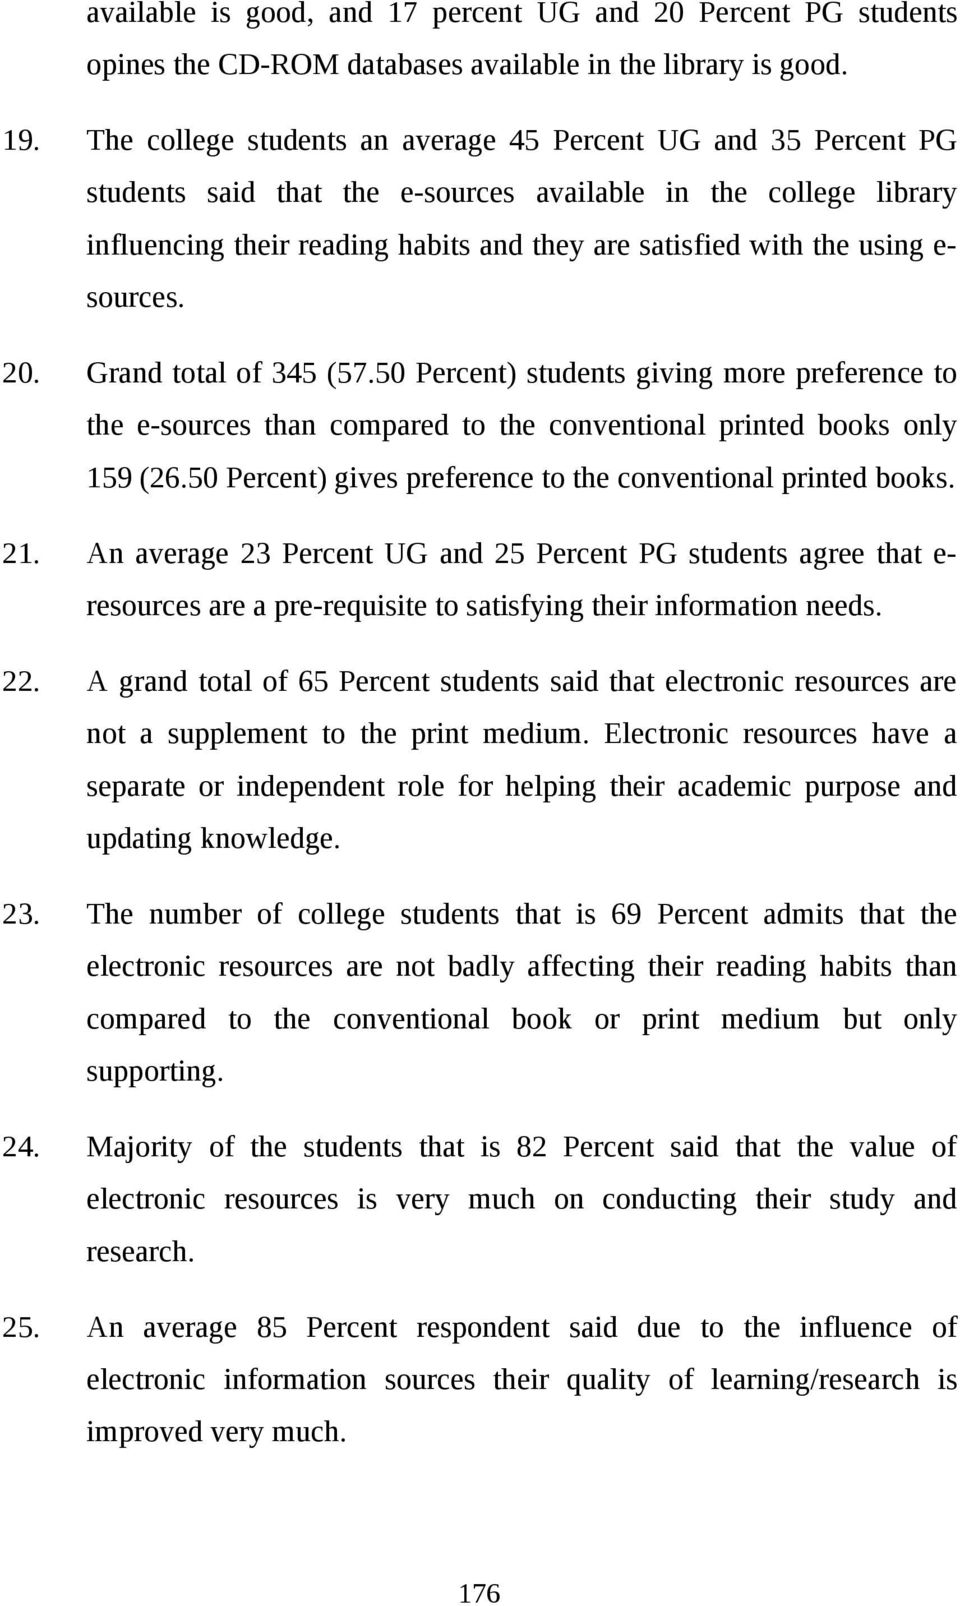 using esources. 20. Grand total of 345 (57.50 Percent) students giving more preference to the e-sources than compared to the conventional printed books only 159 (26.